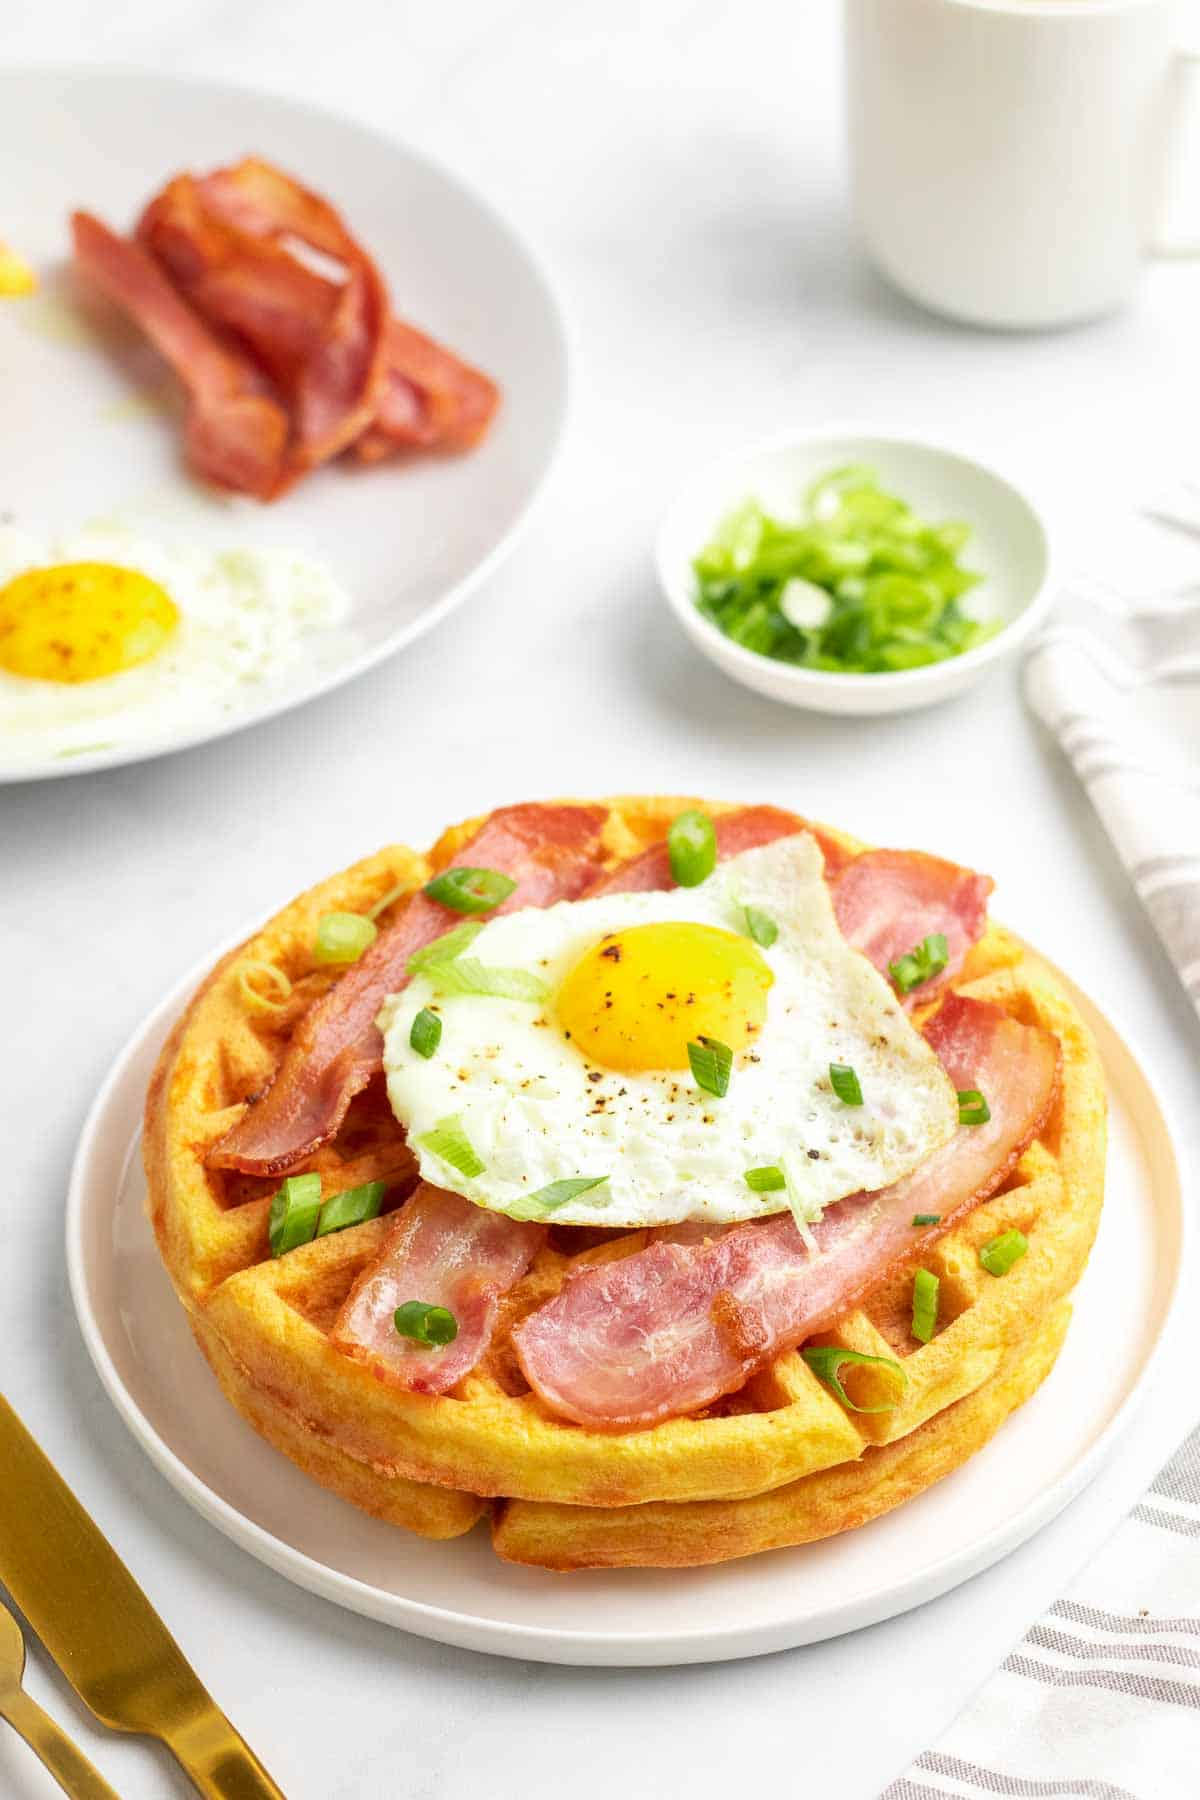 Finished chaffle from Keto Chaffle recipe, topped with bacon, fried egg, and scallions topped with bacon and a fried egg